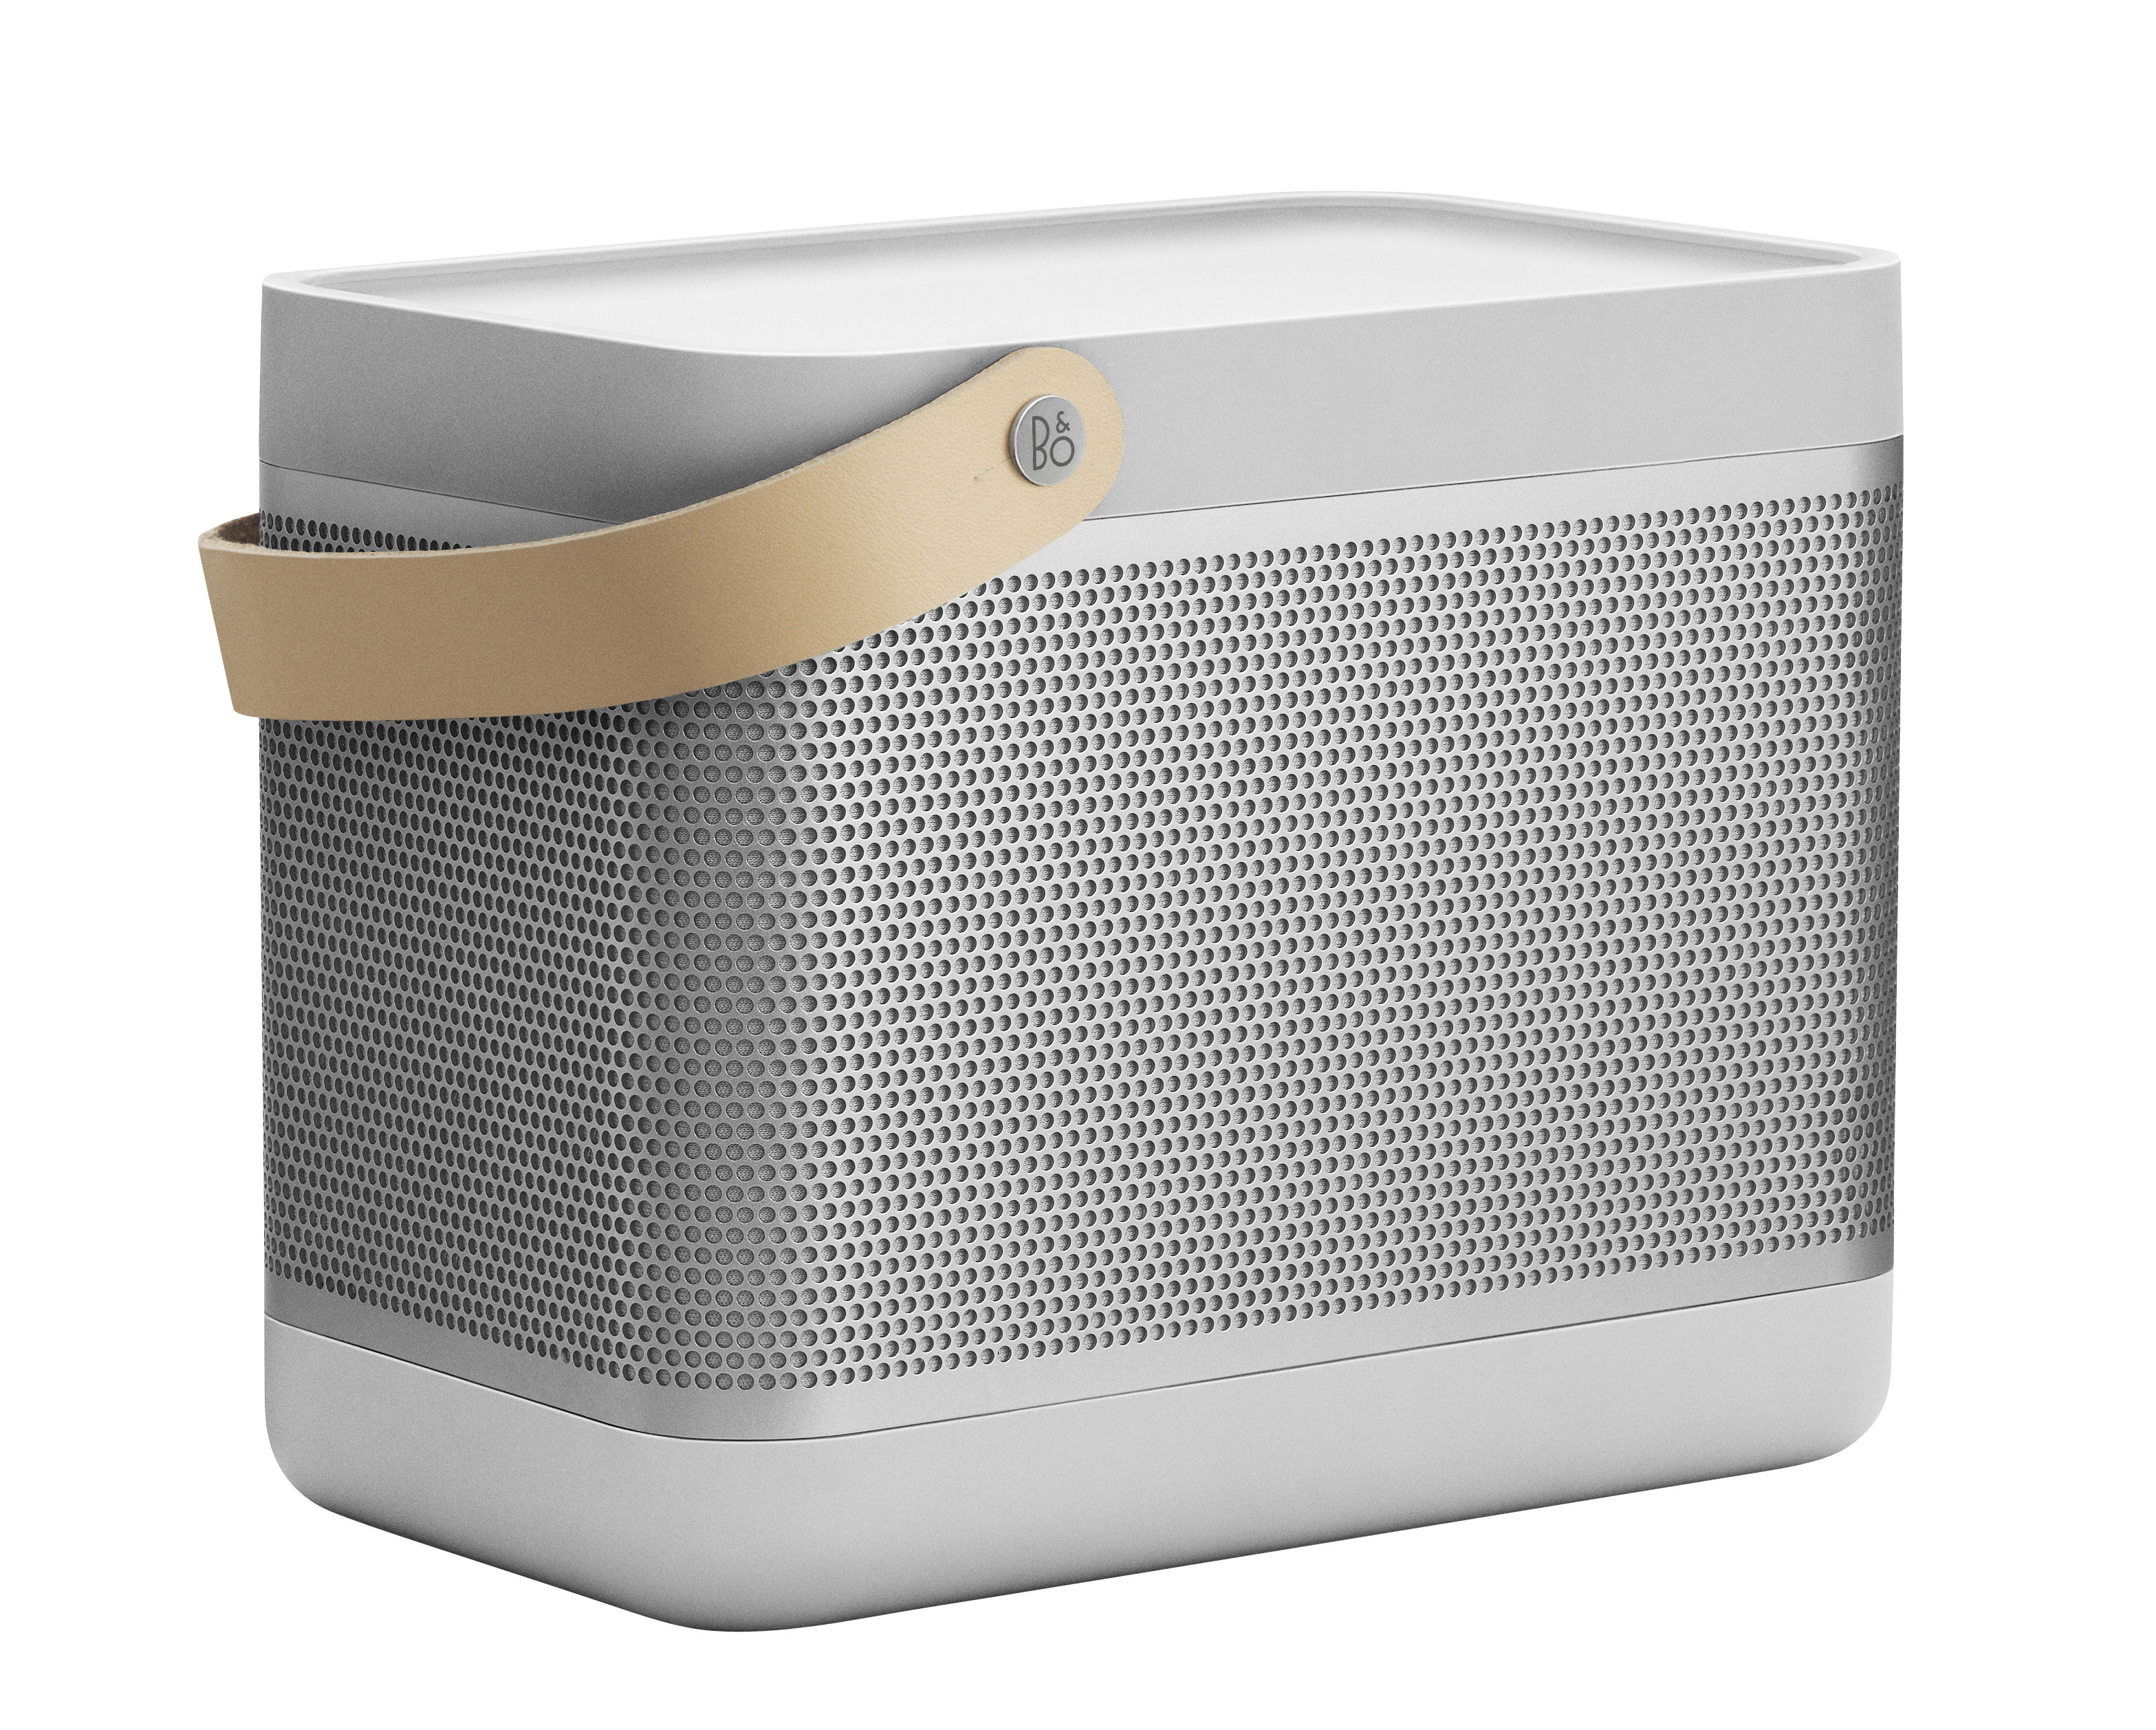 enceinte bluetooth beolit 17 portable sans fil gris cuir naturel b o play by bang olufsen. Black Bedroom Furniture Sets. Home Design Ideas